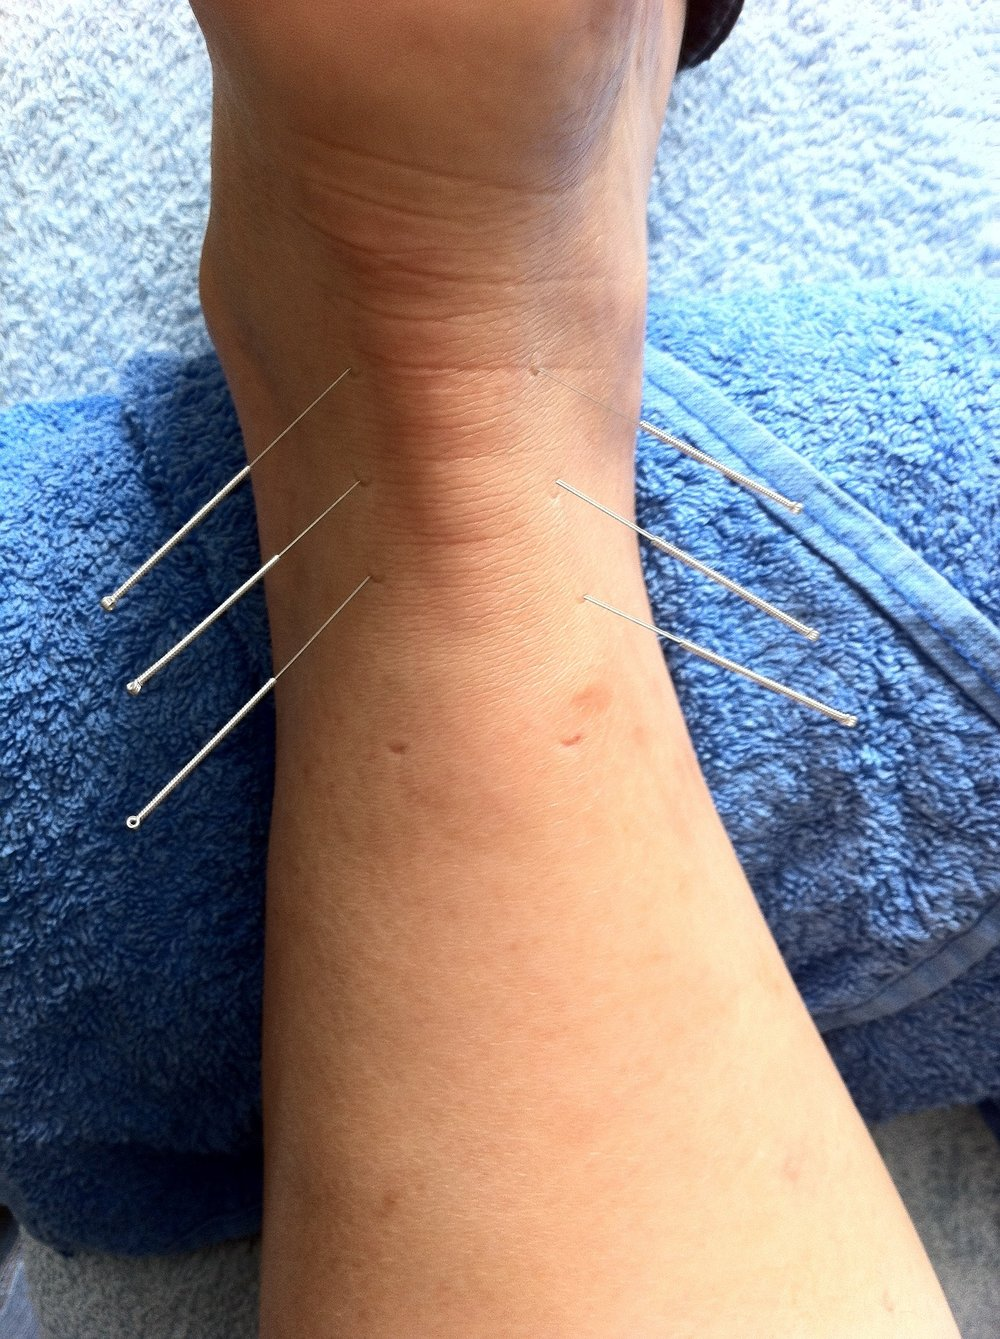 acupuncture-1211182_1920.jpg